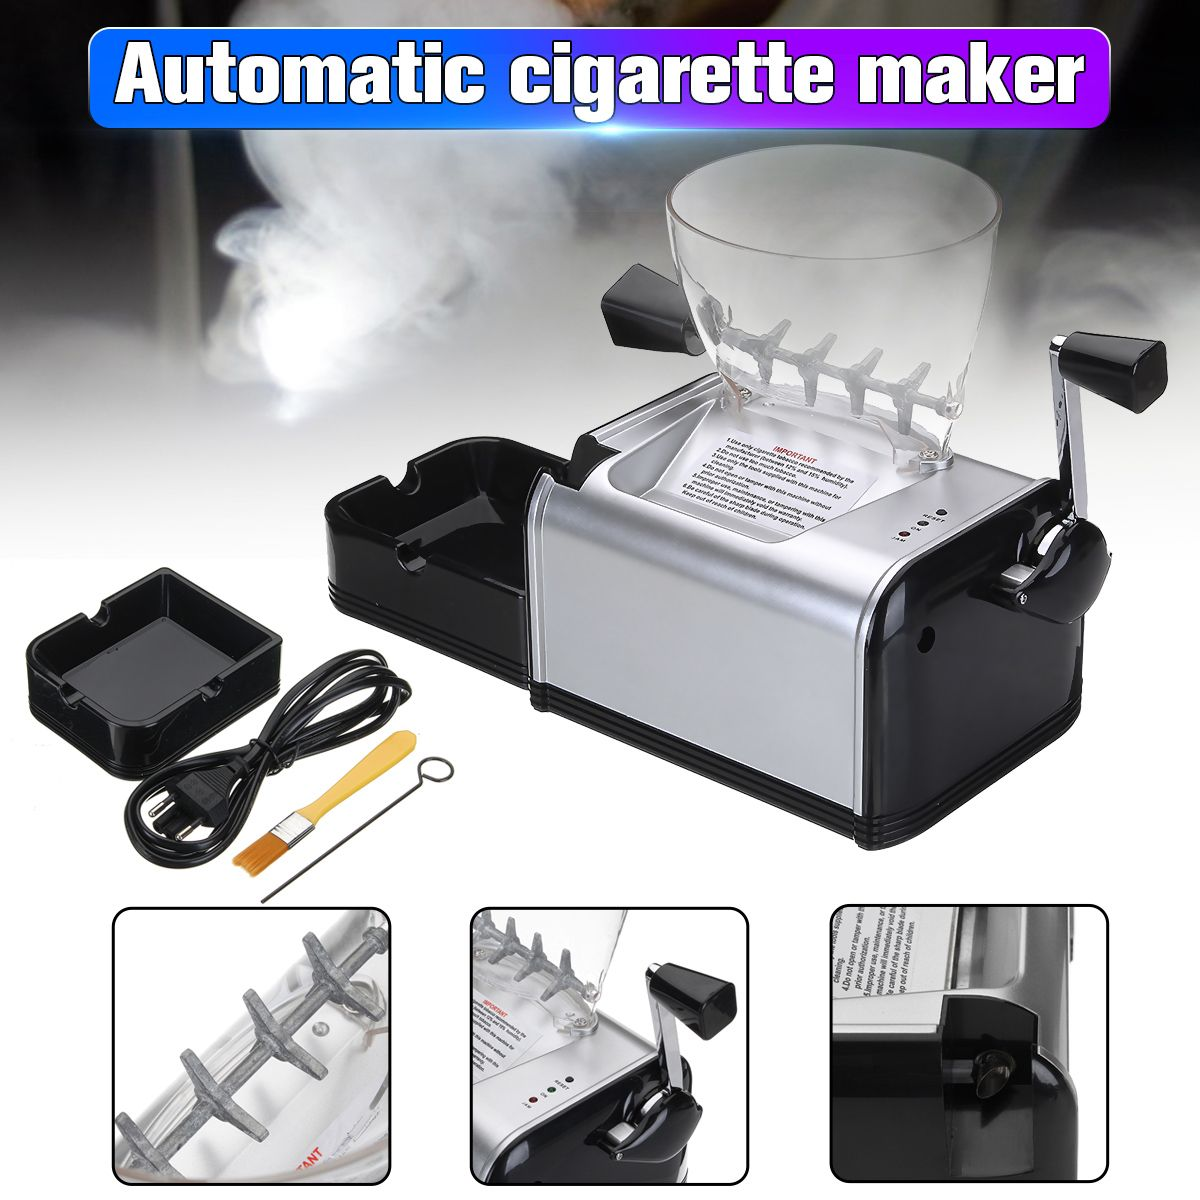 Automatic Electric Making Rolling Machine Cigarette Machine Tobacco Electronic Injector Maker Roller Easy Portable Smoking Tool